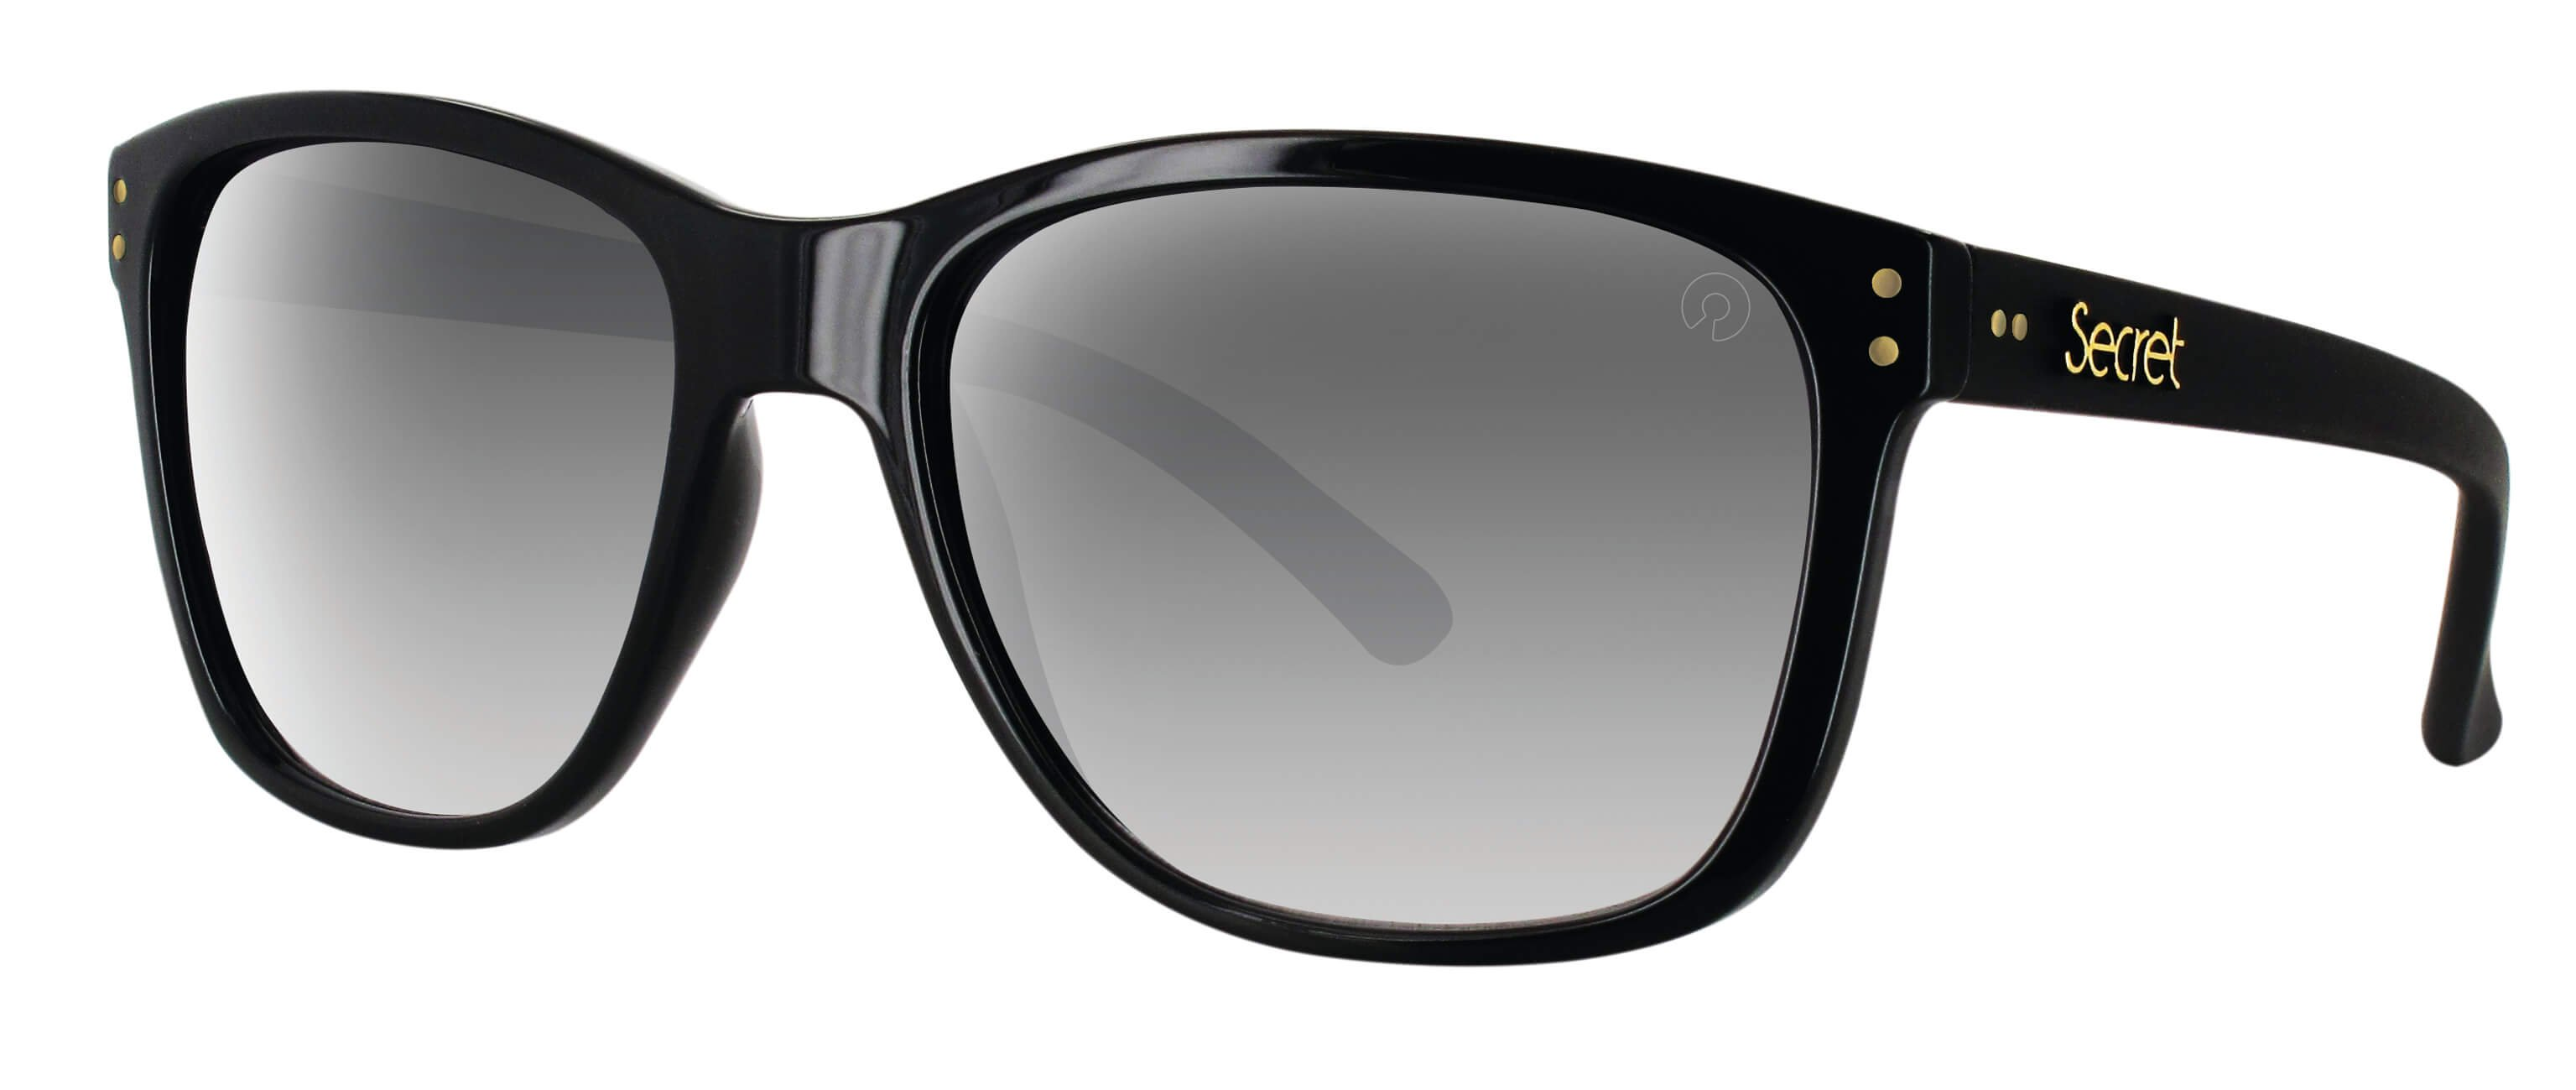 ÓC SECRET ZOE MIXED BLACK / POLARIZED GRADIENT GRAY